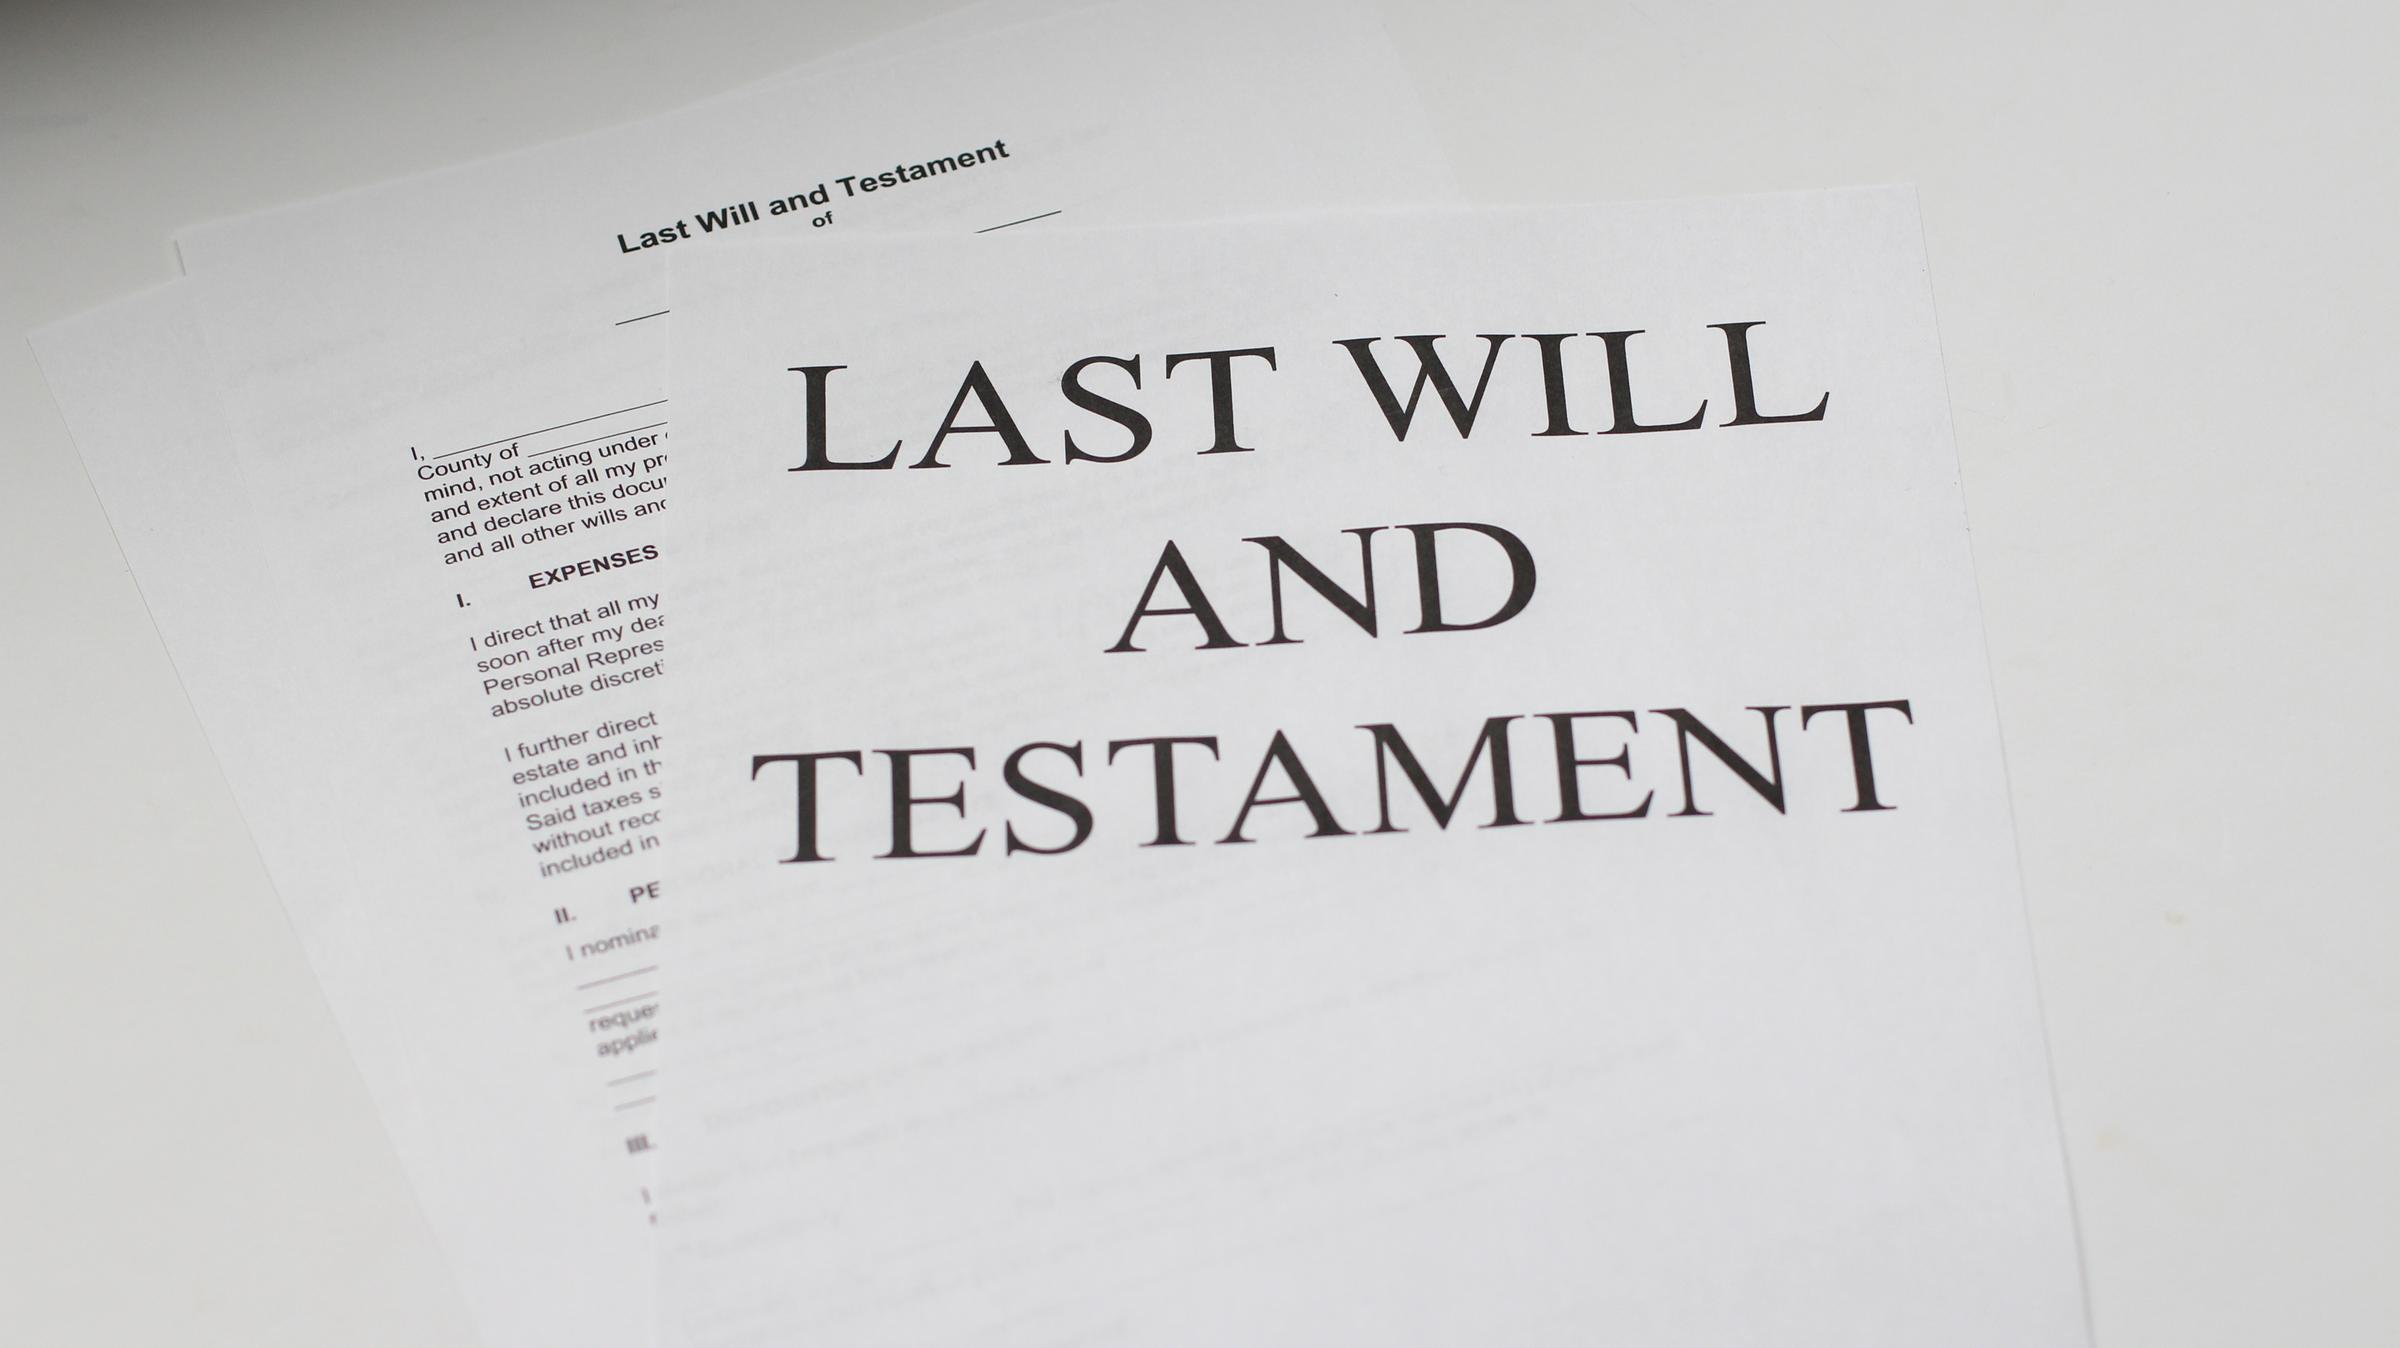 last will and testament michigan The complicated aftermath of dying without a will | Michigan Radio